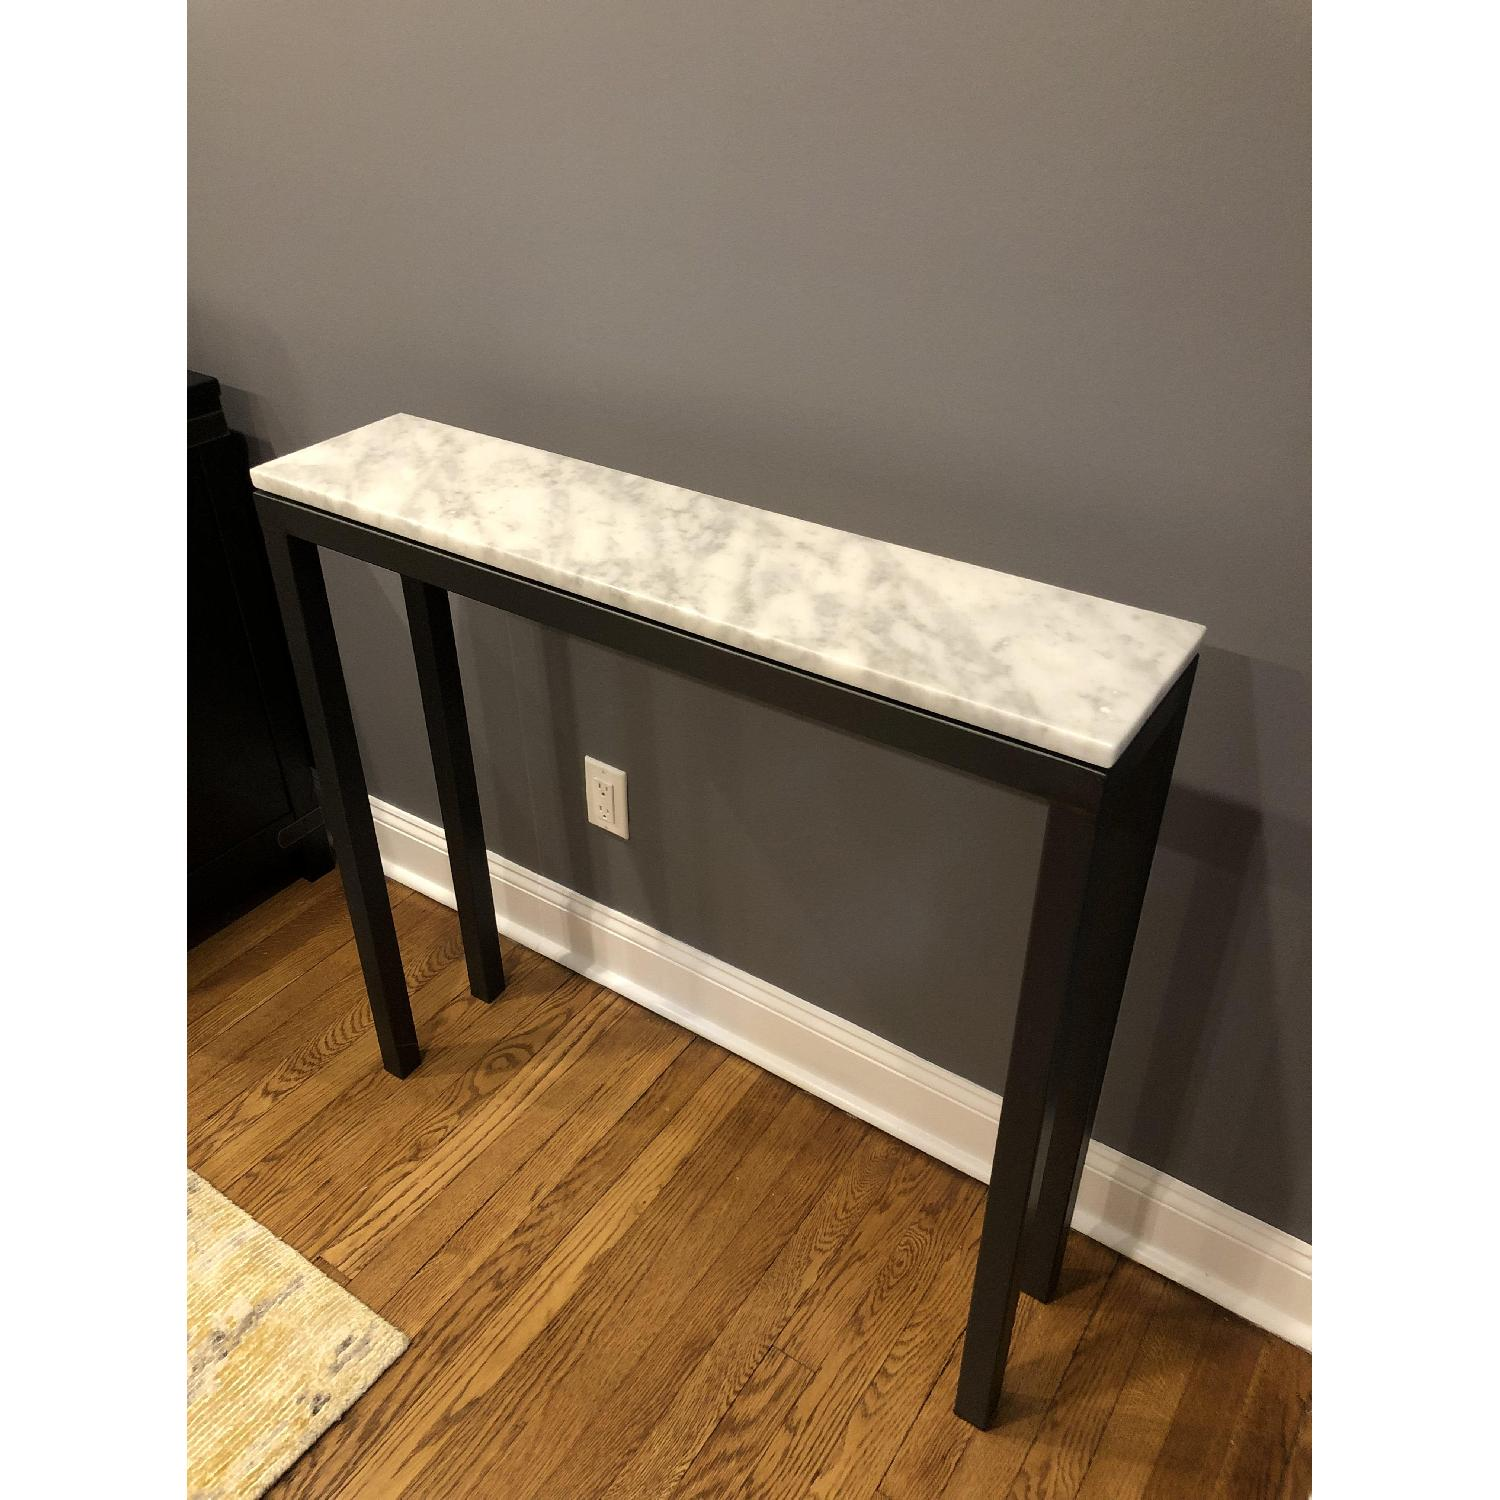 Room & Board Marble Top Console Table - image-5